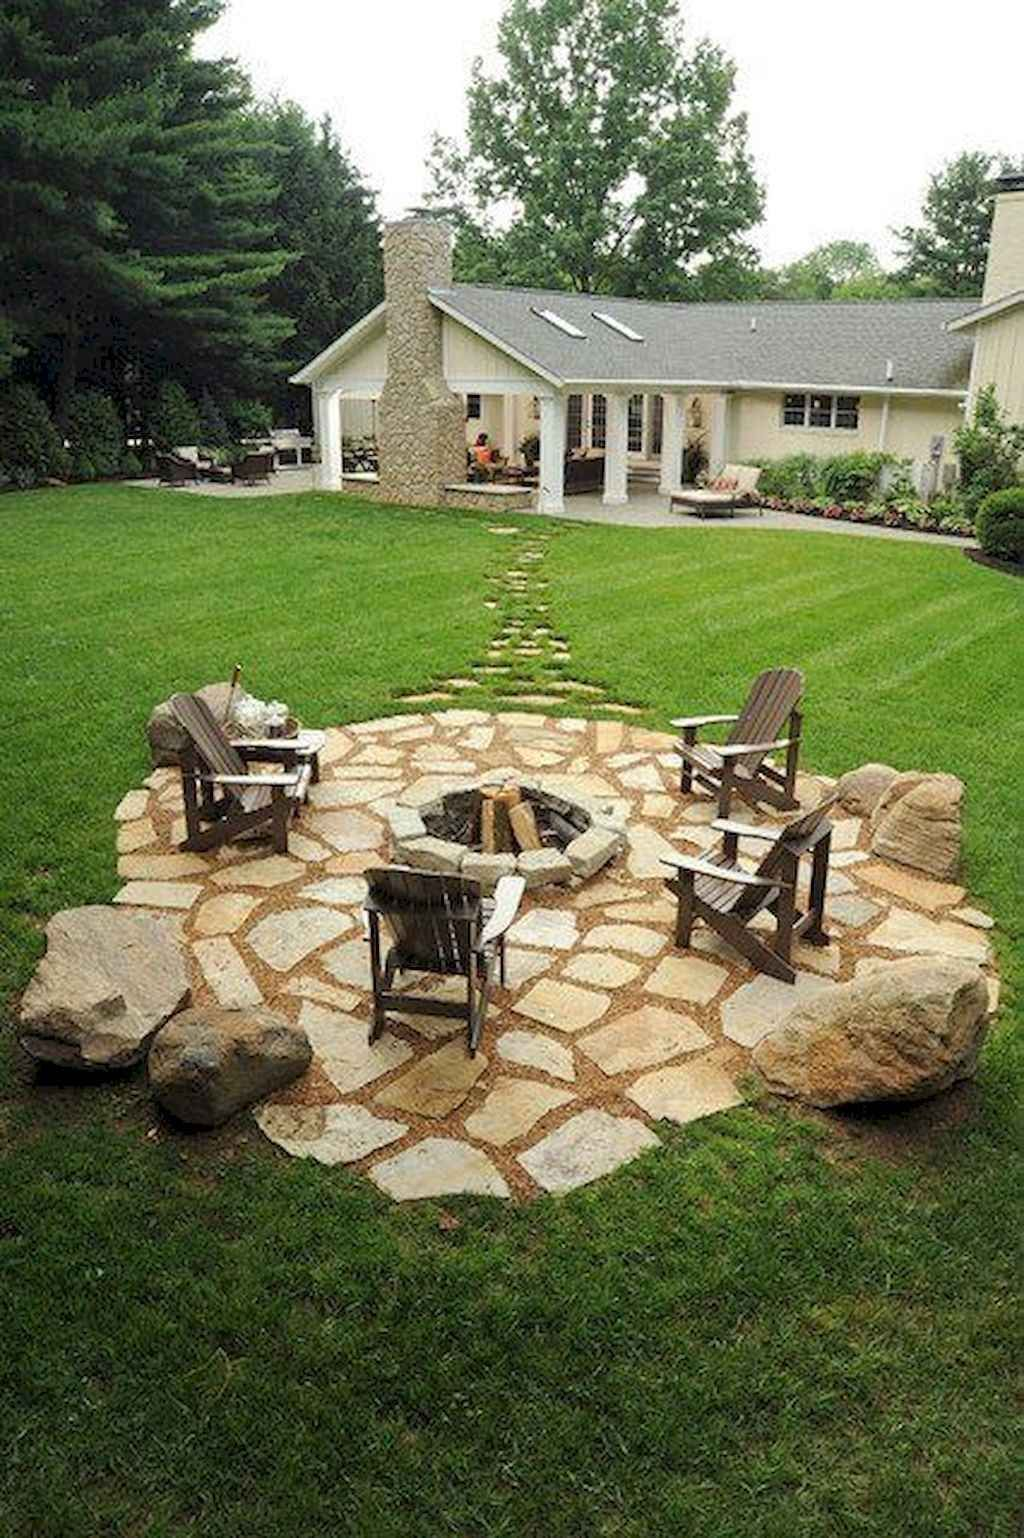 Amazing Fire Pit Design Ideas For Your Backyard Decor 24